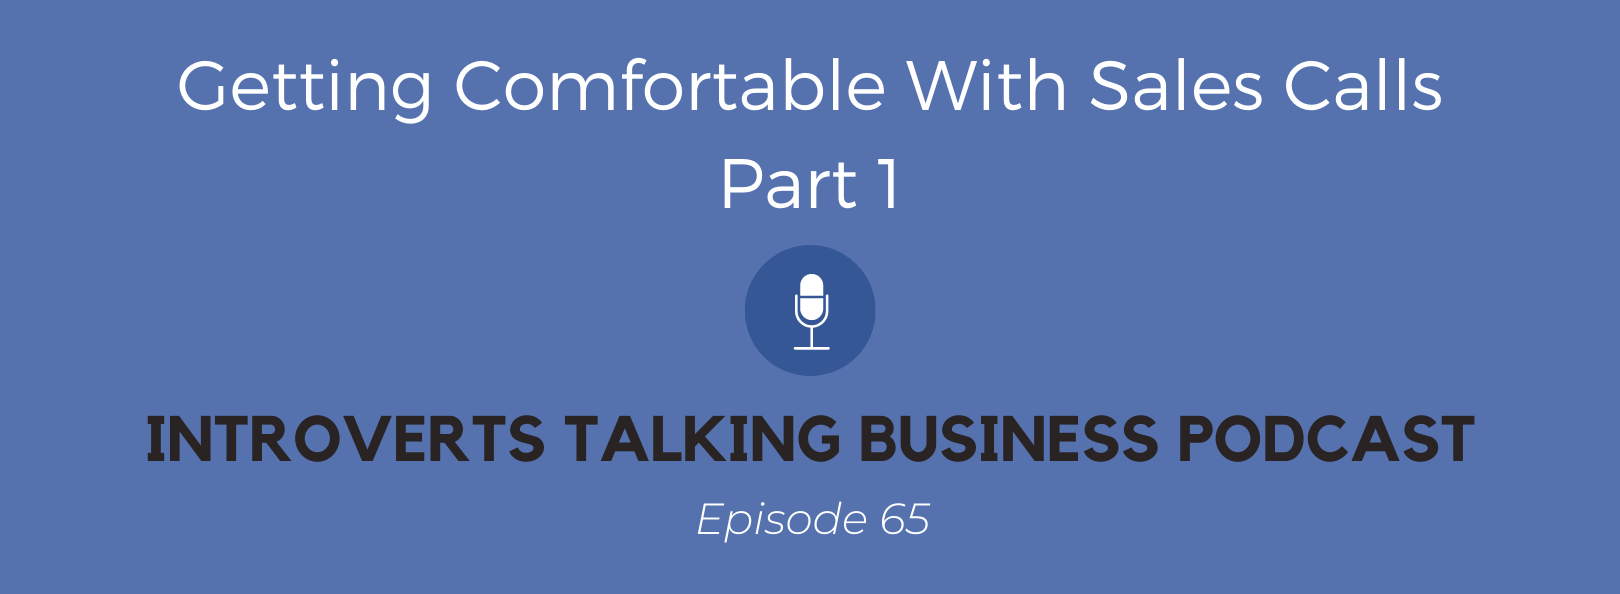 Getting comfortable with sales calls, part 1